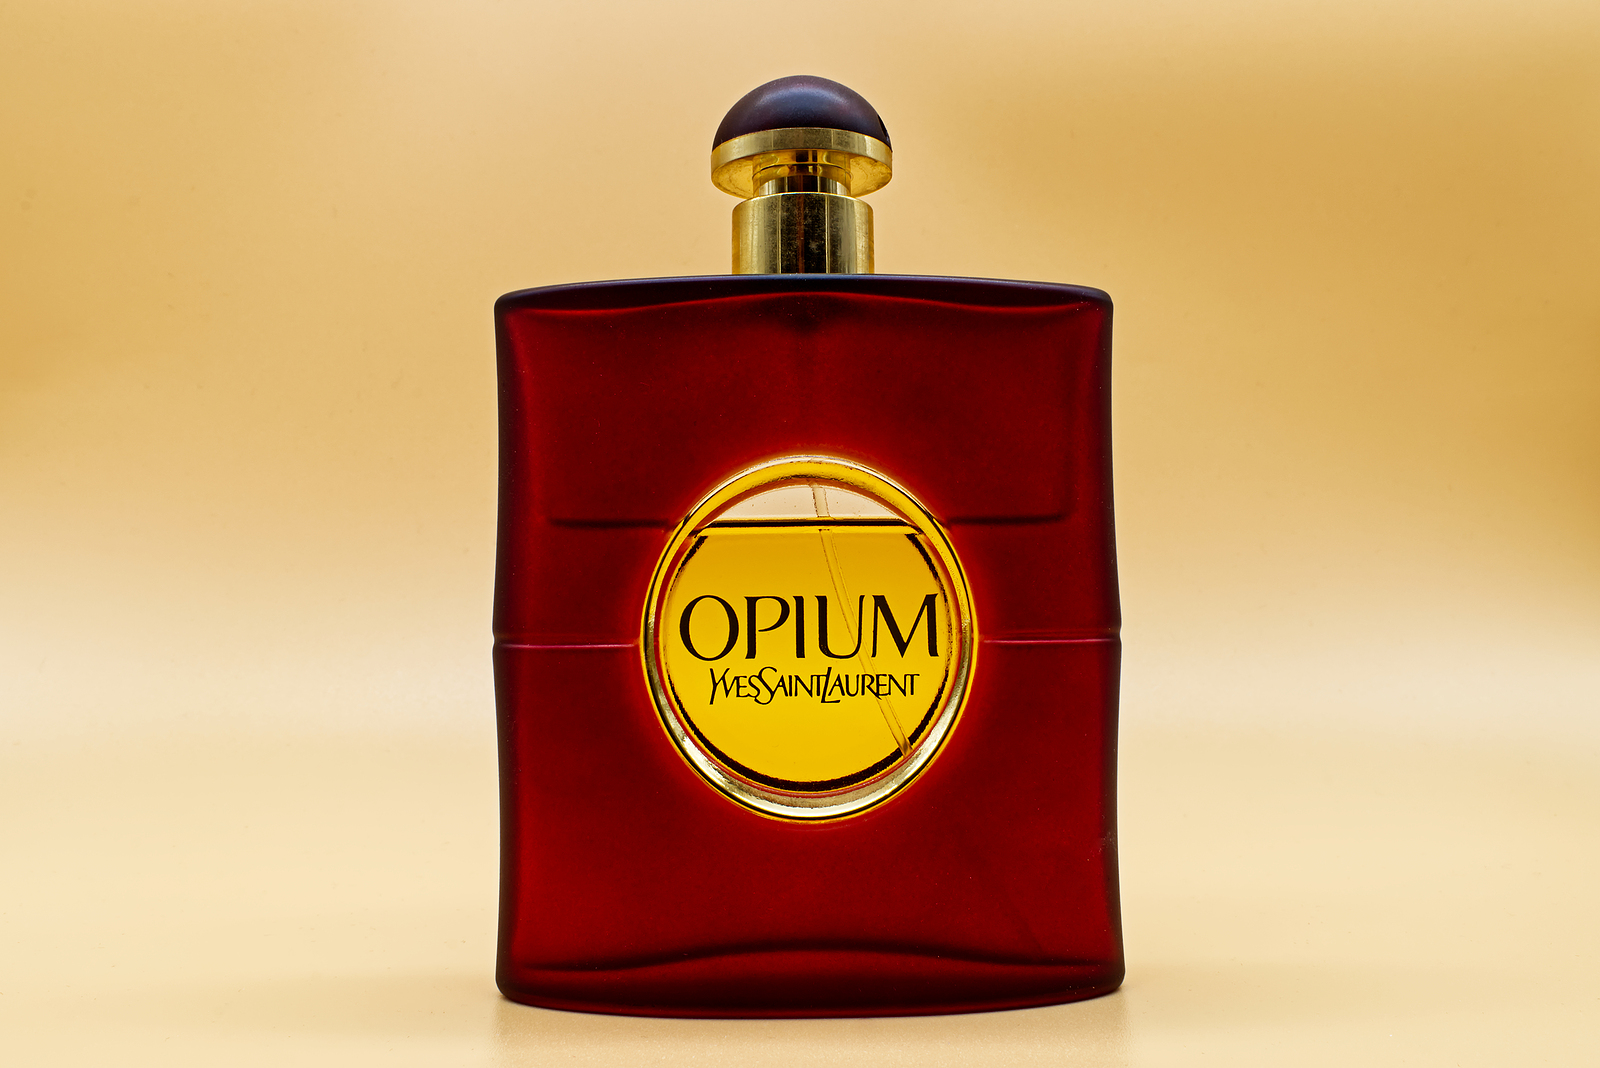 Top 6 Best High-End Luxury Perfume Brands in the World